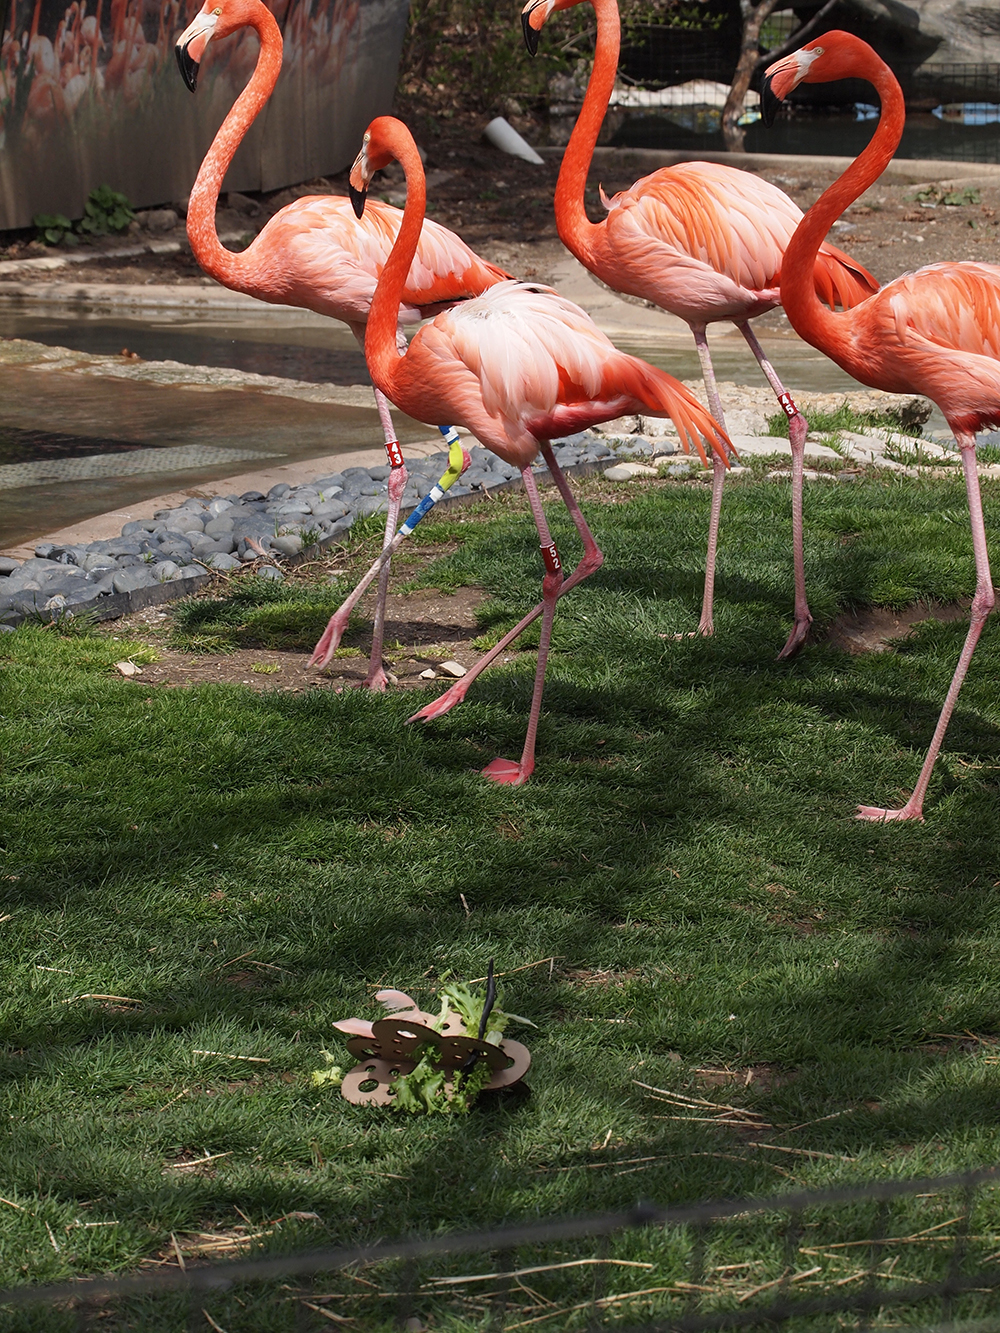 Animation, Flamingos mill about in an enclosure, some appear to be injured and have bandages wrapped around their legs